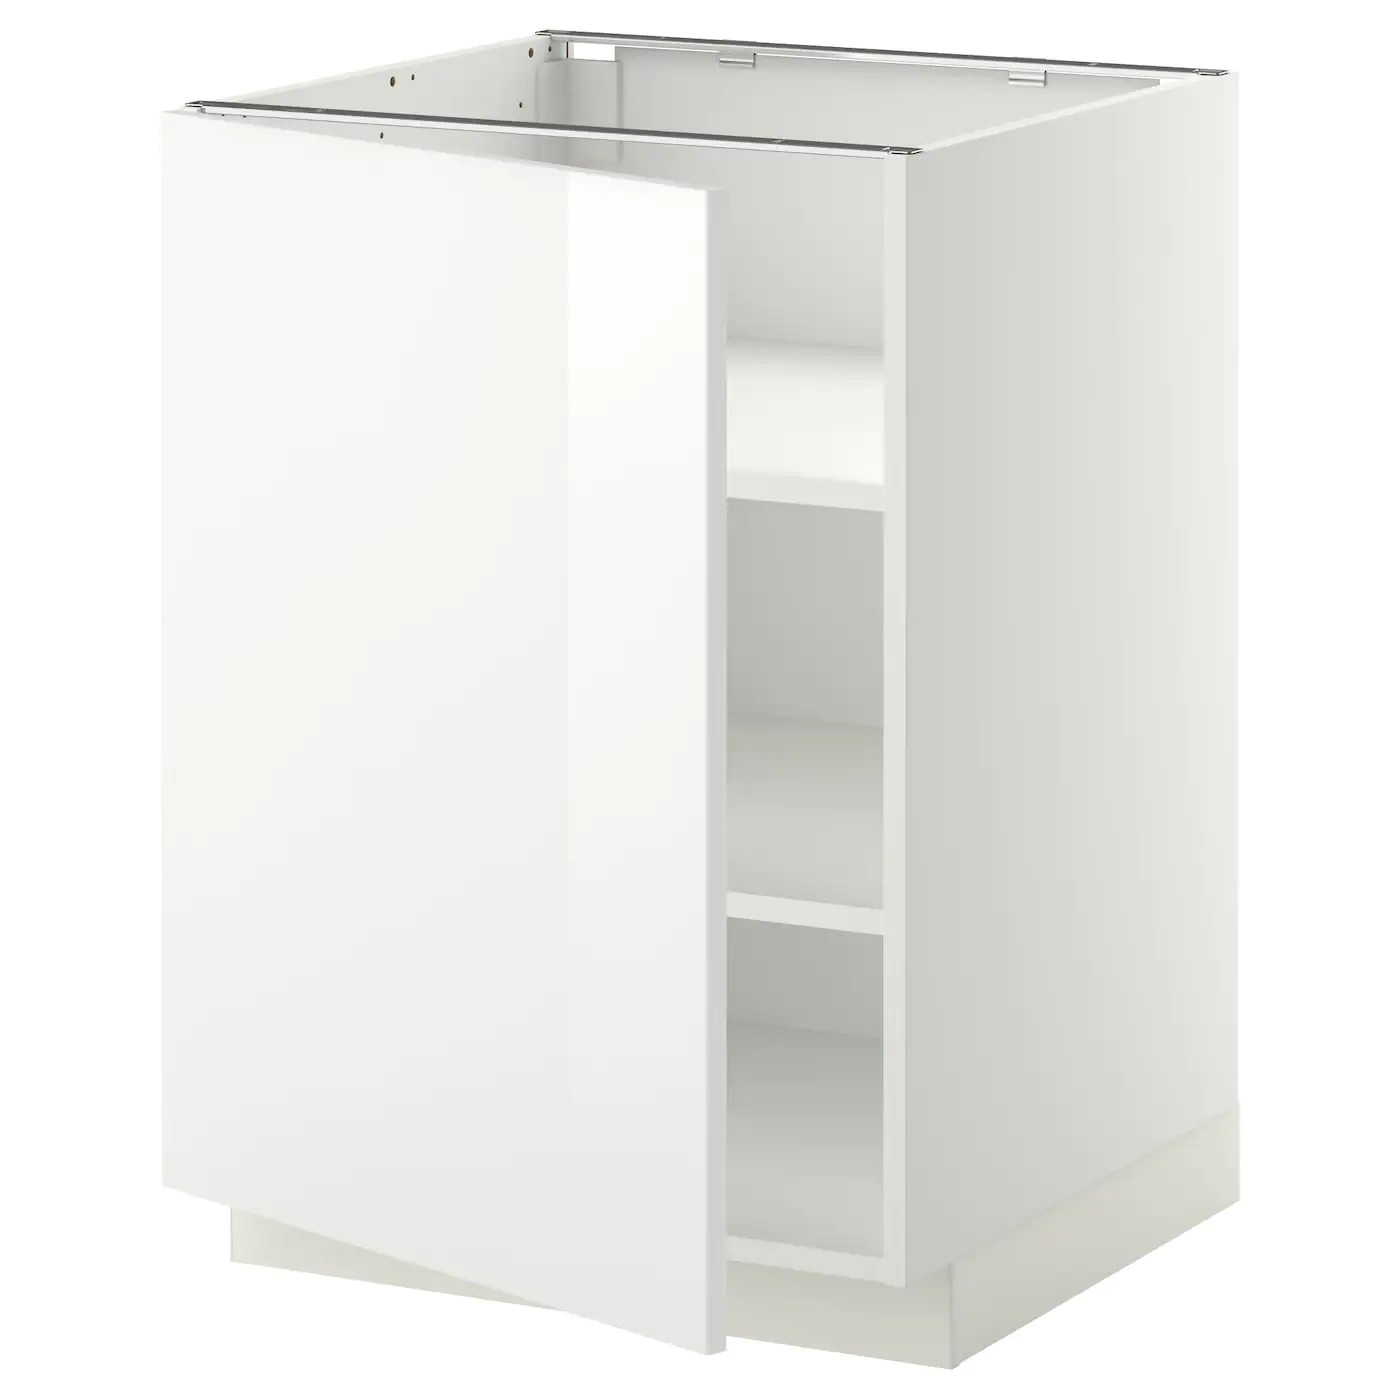 Metod Ikea Metod Base Cabinet With Shelves White Ringhult White